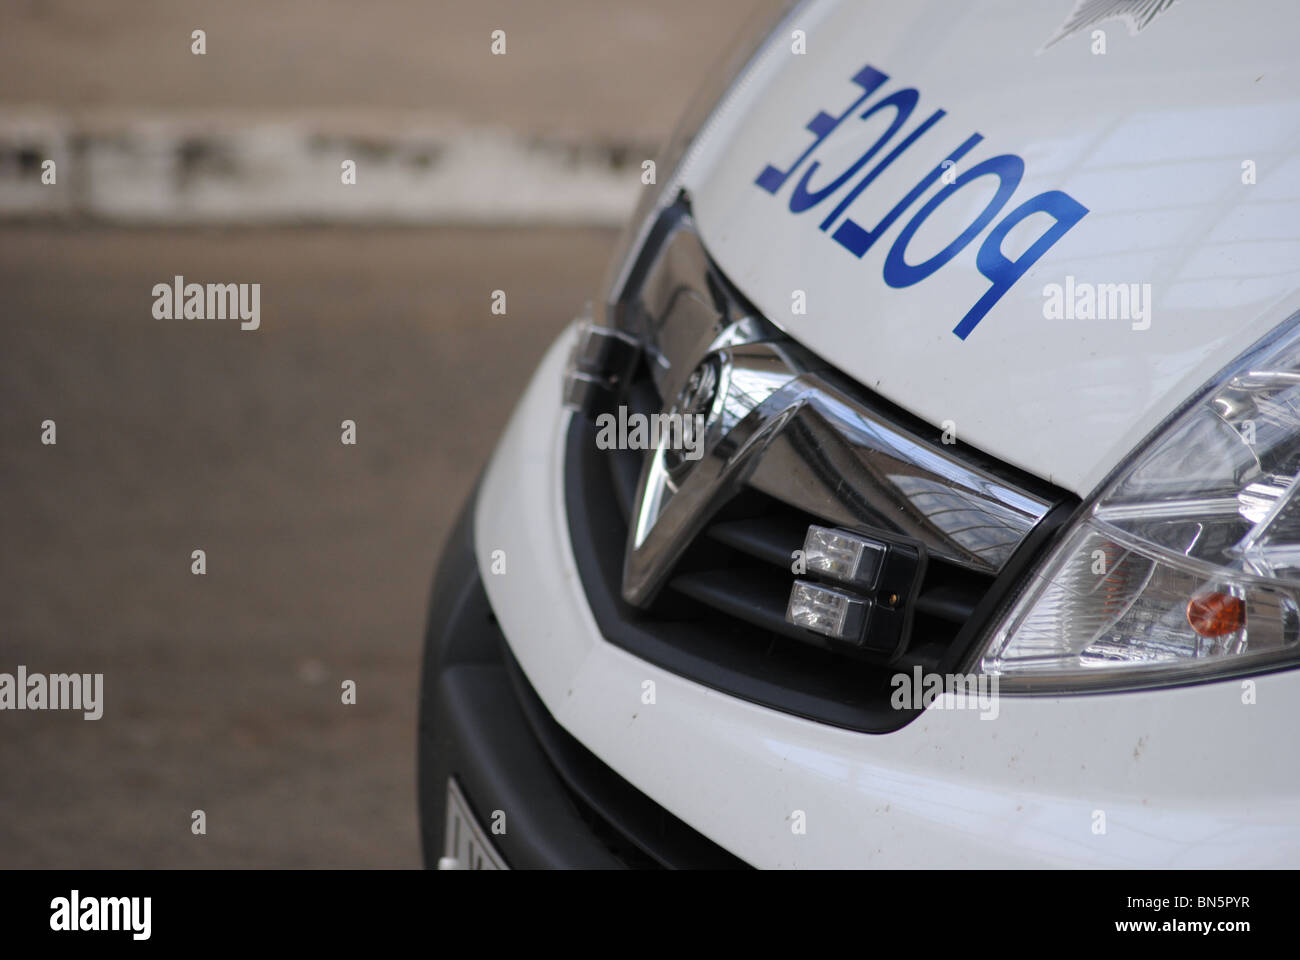 Front of a Police van parked at Glasgow Central Railway Station. - Stock Image